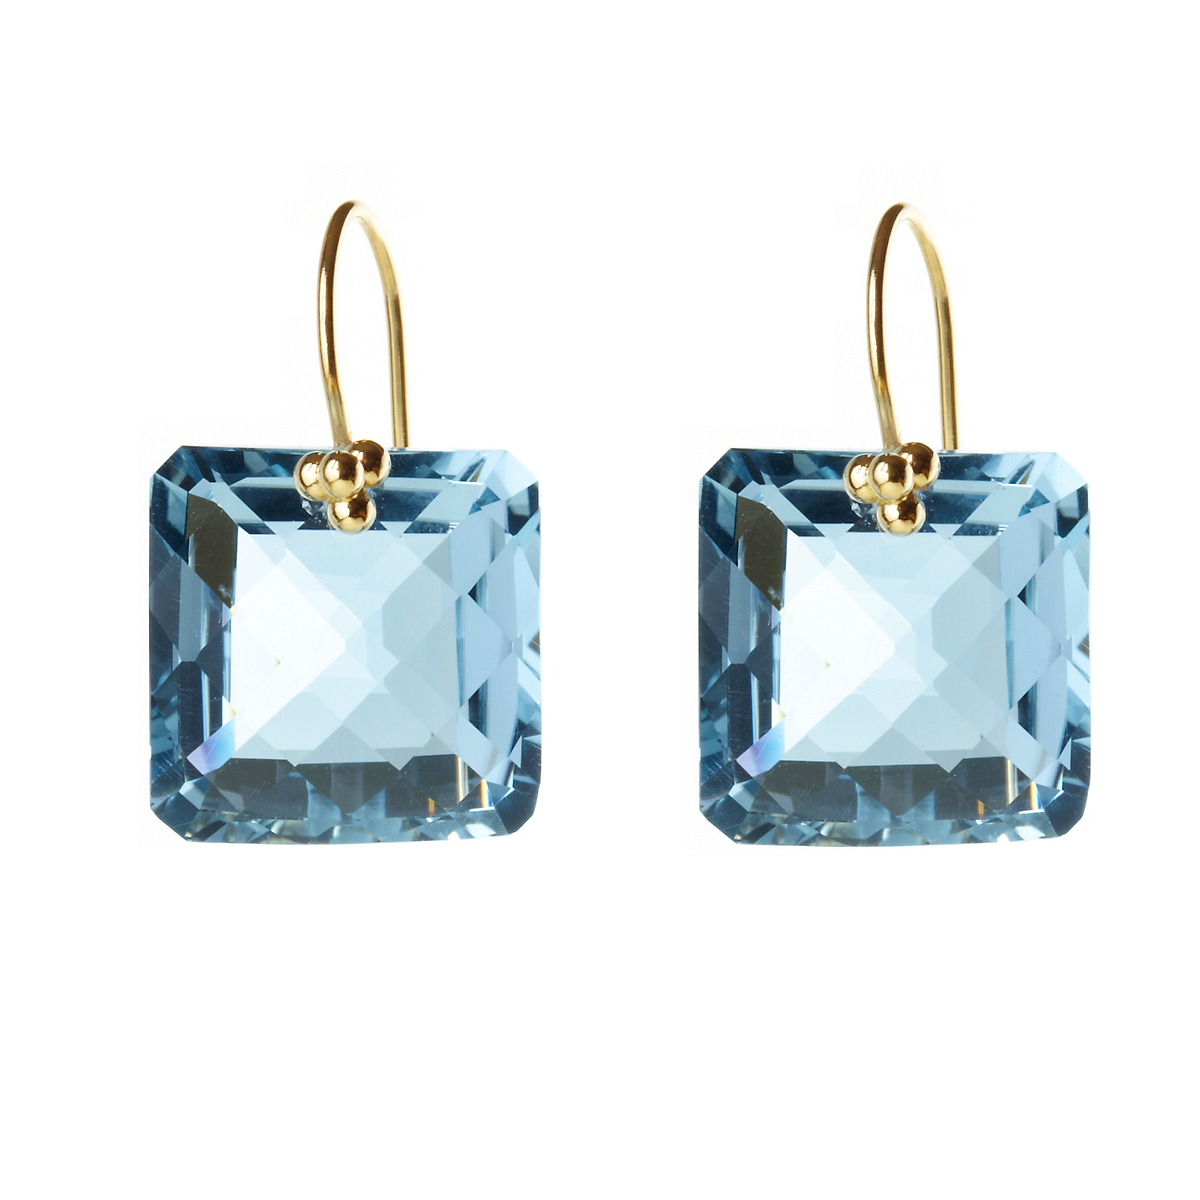 Nikki Baker Sky Blue Topaz Drop Earrings